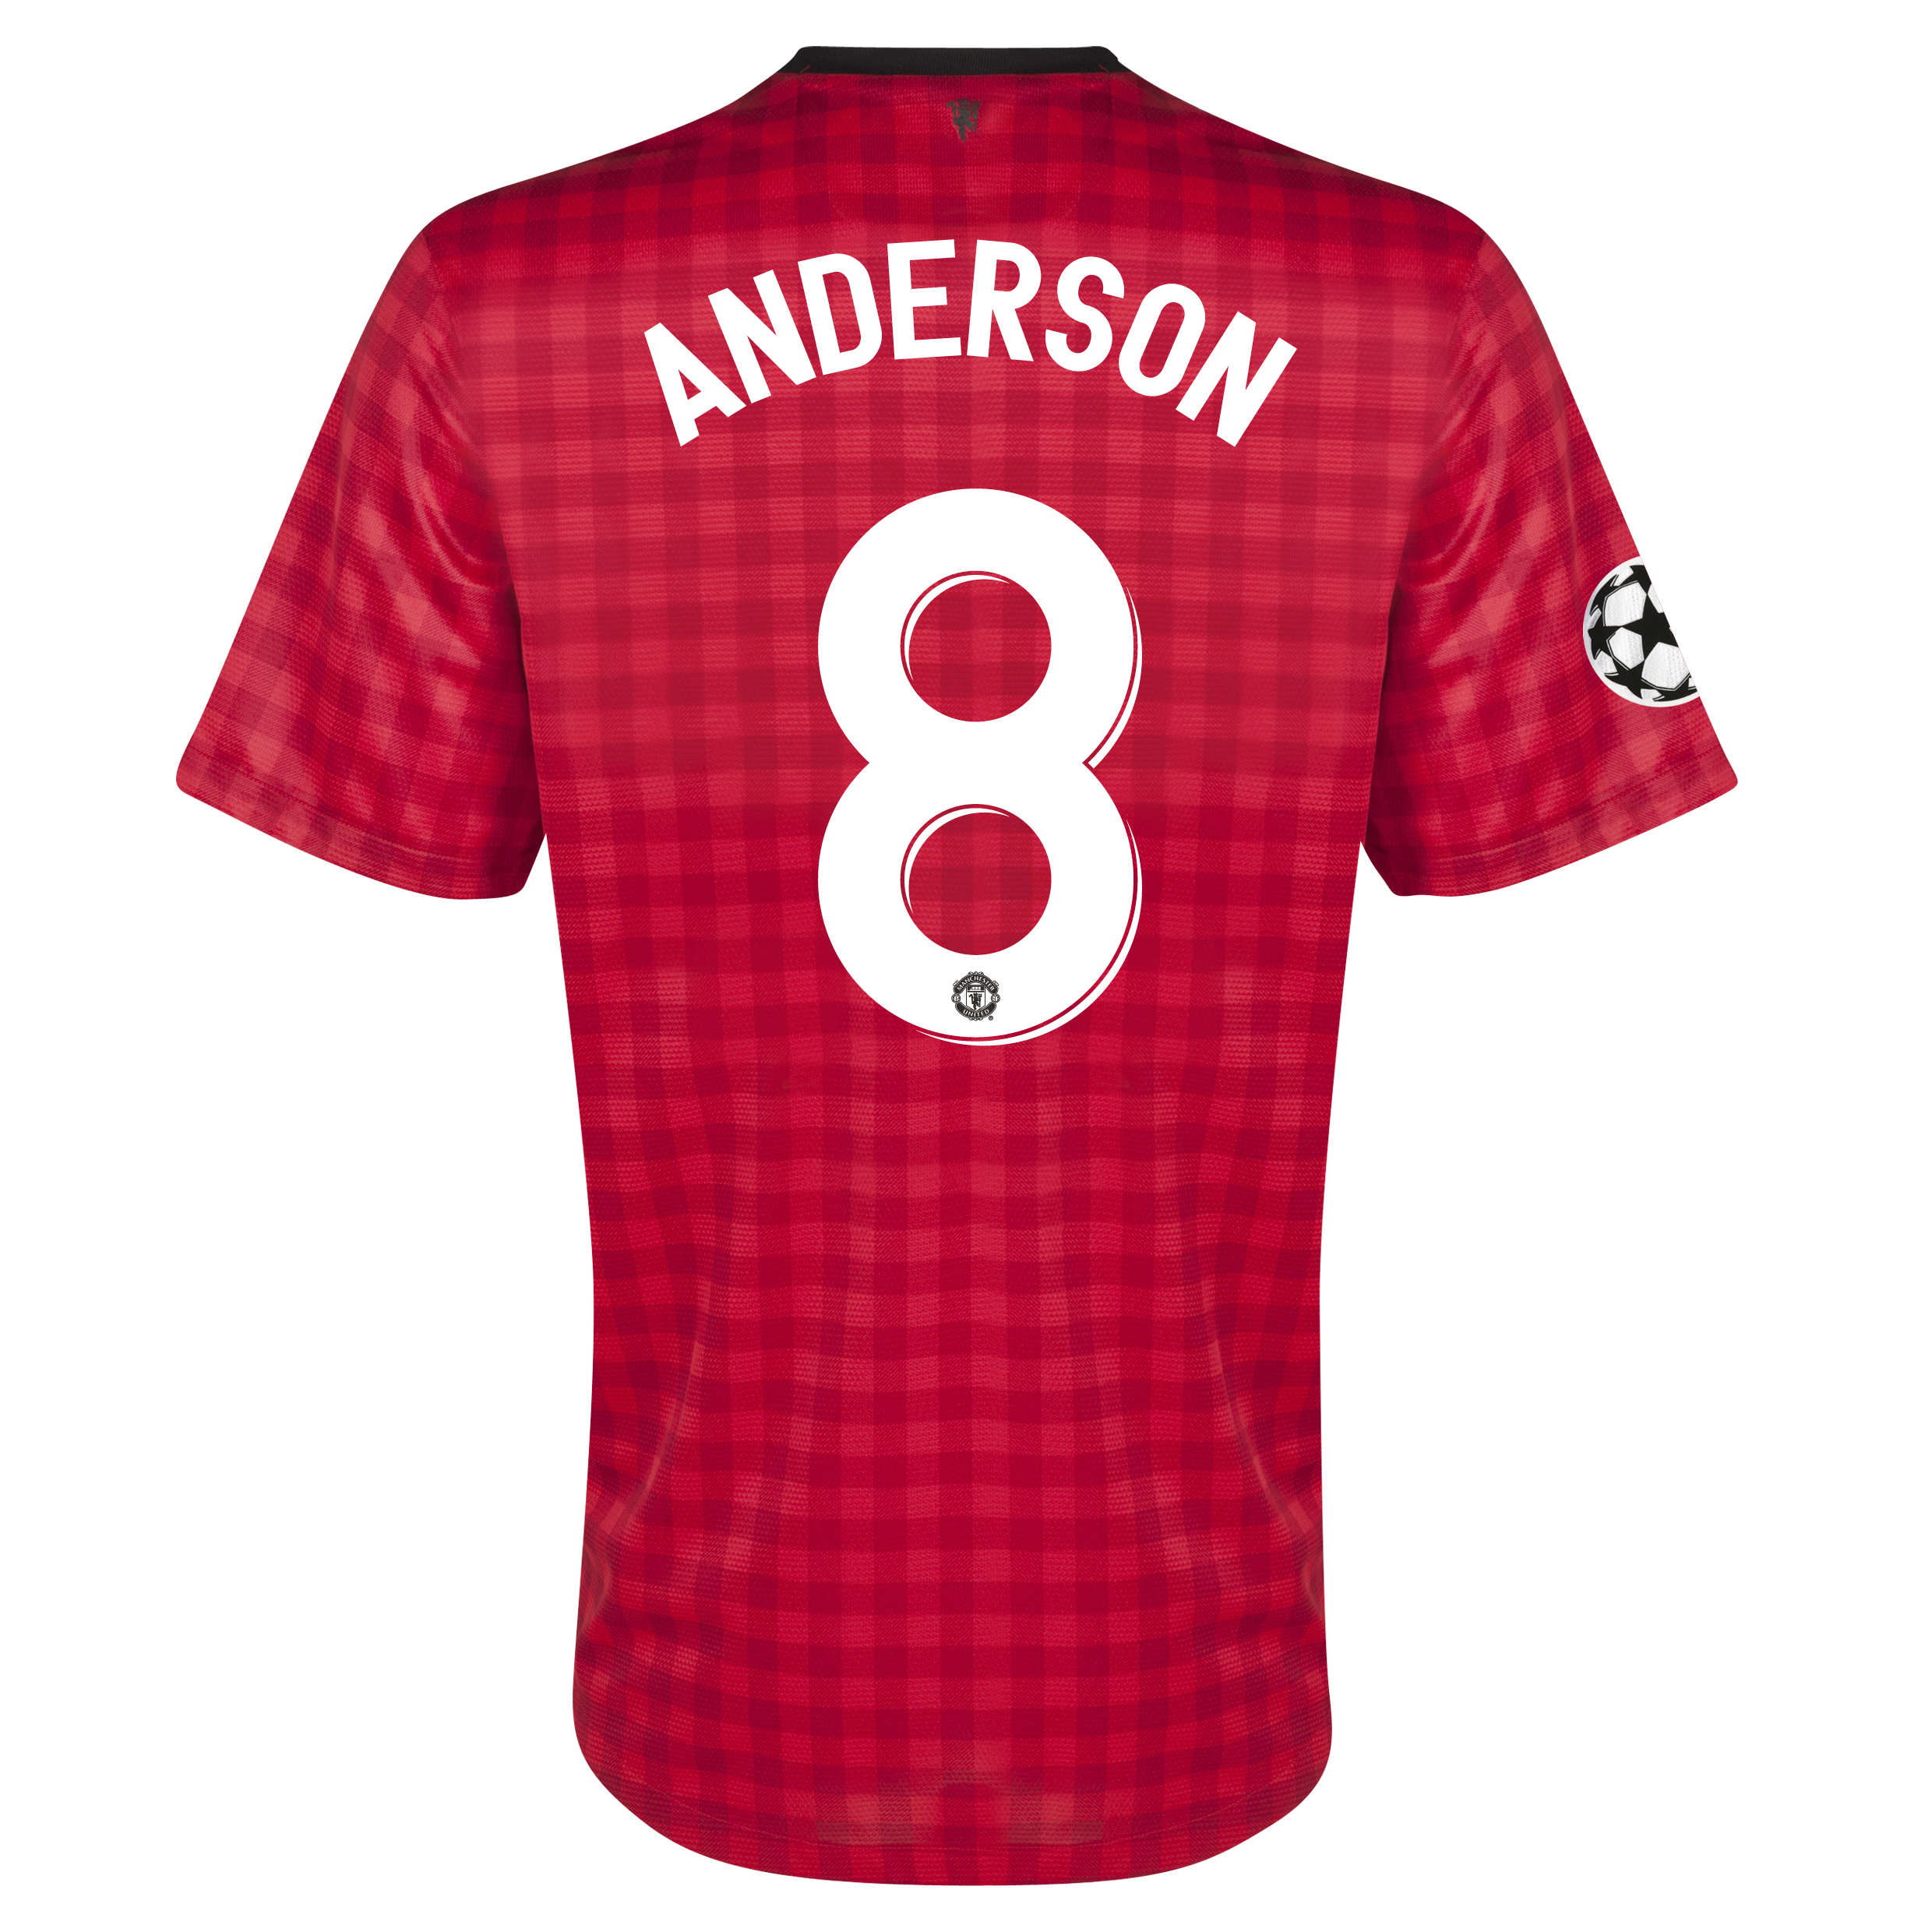 Manchester United UEFA Champions League Home Shirt 2012/13 with Anderson 8 printing